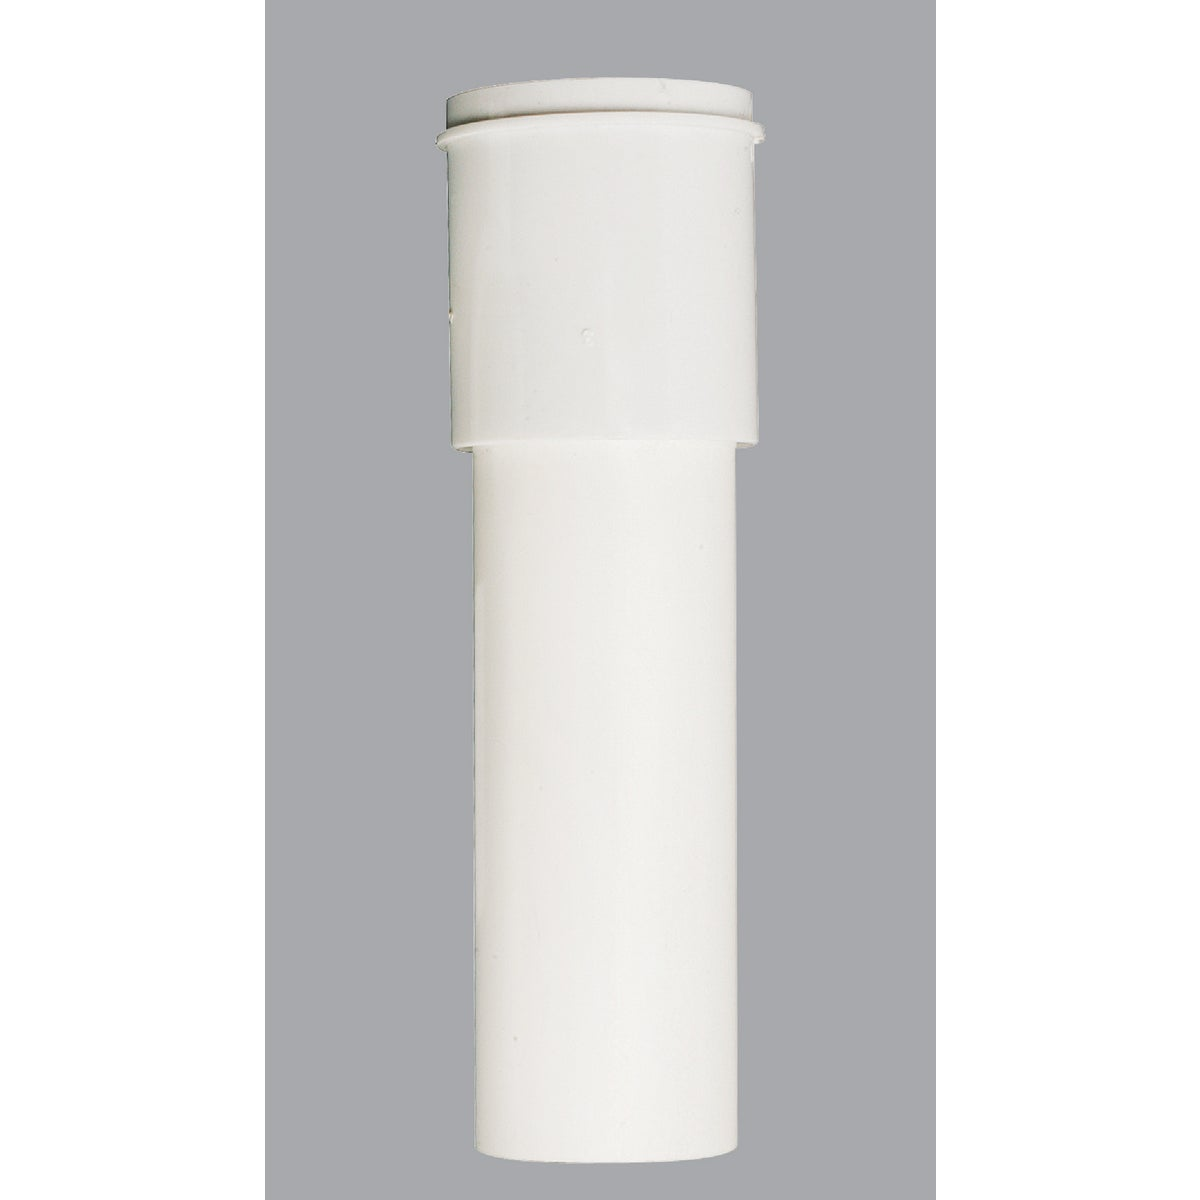 1-1/2X12 SOLV EXT TUBE - 20-12WK by Plumb Pak/keeney Mfg